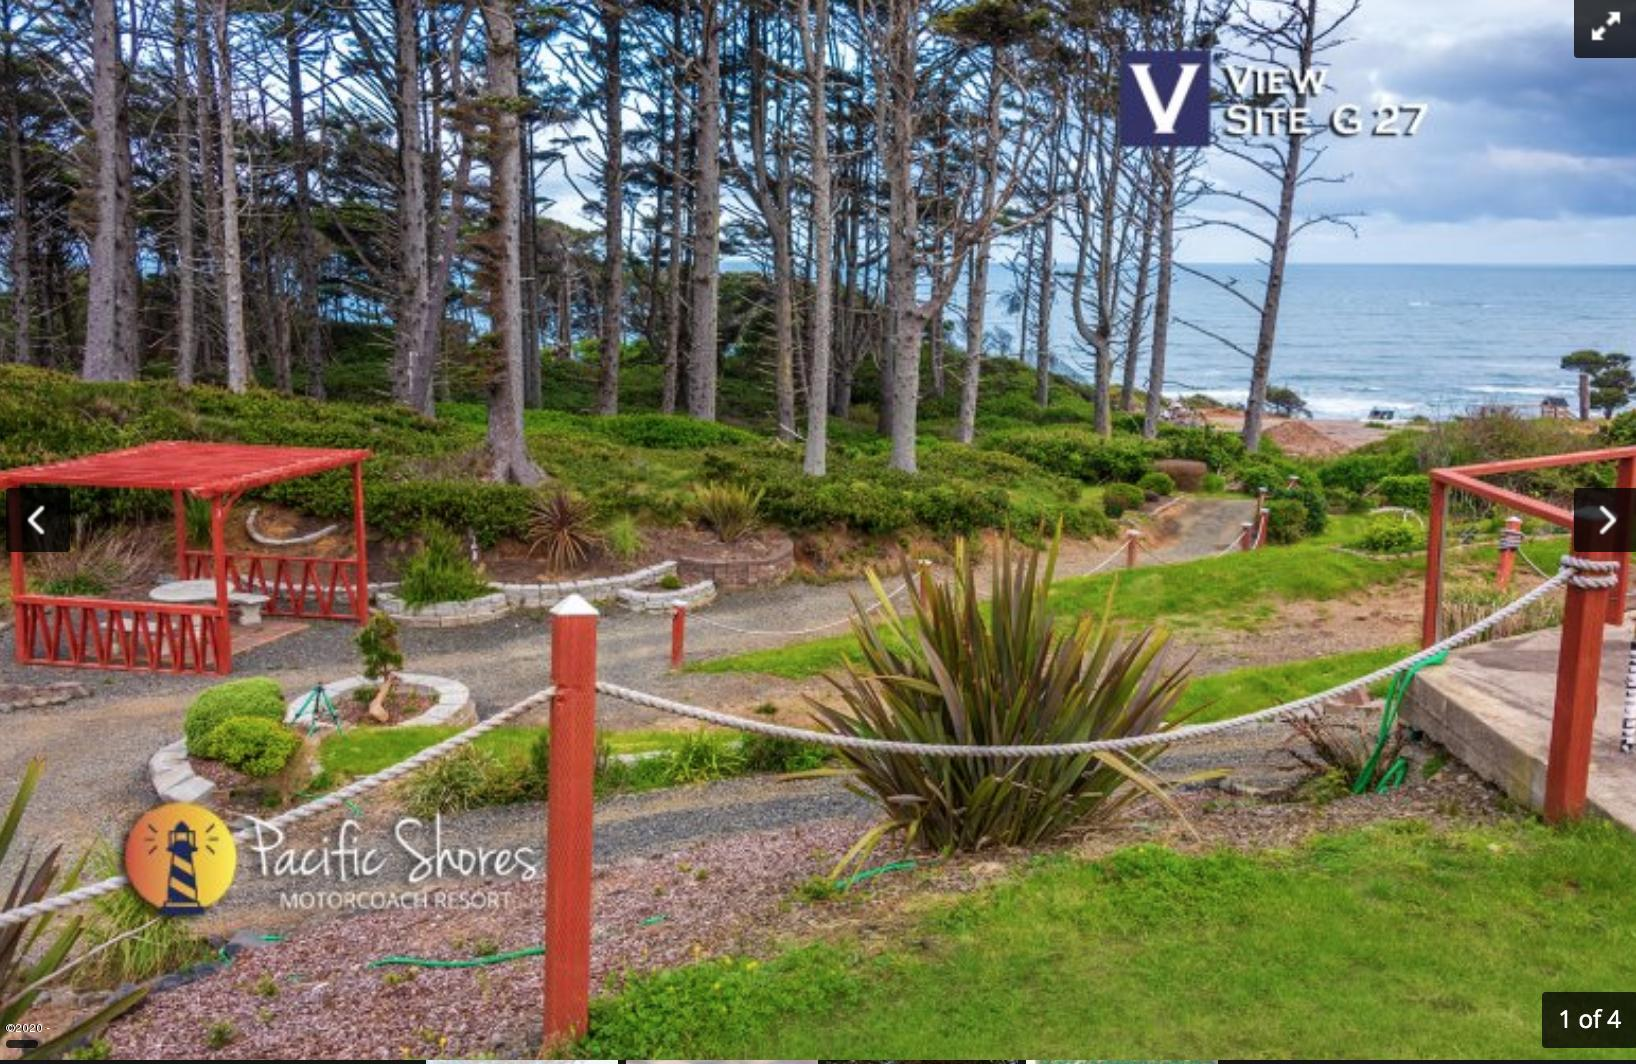 6225 N. Coast Hwy Lot 27, Newport, OR 97365